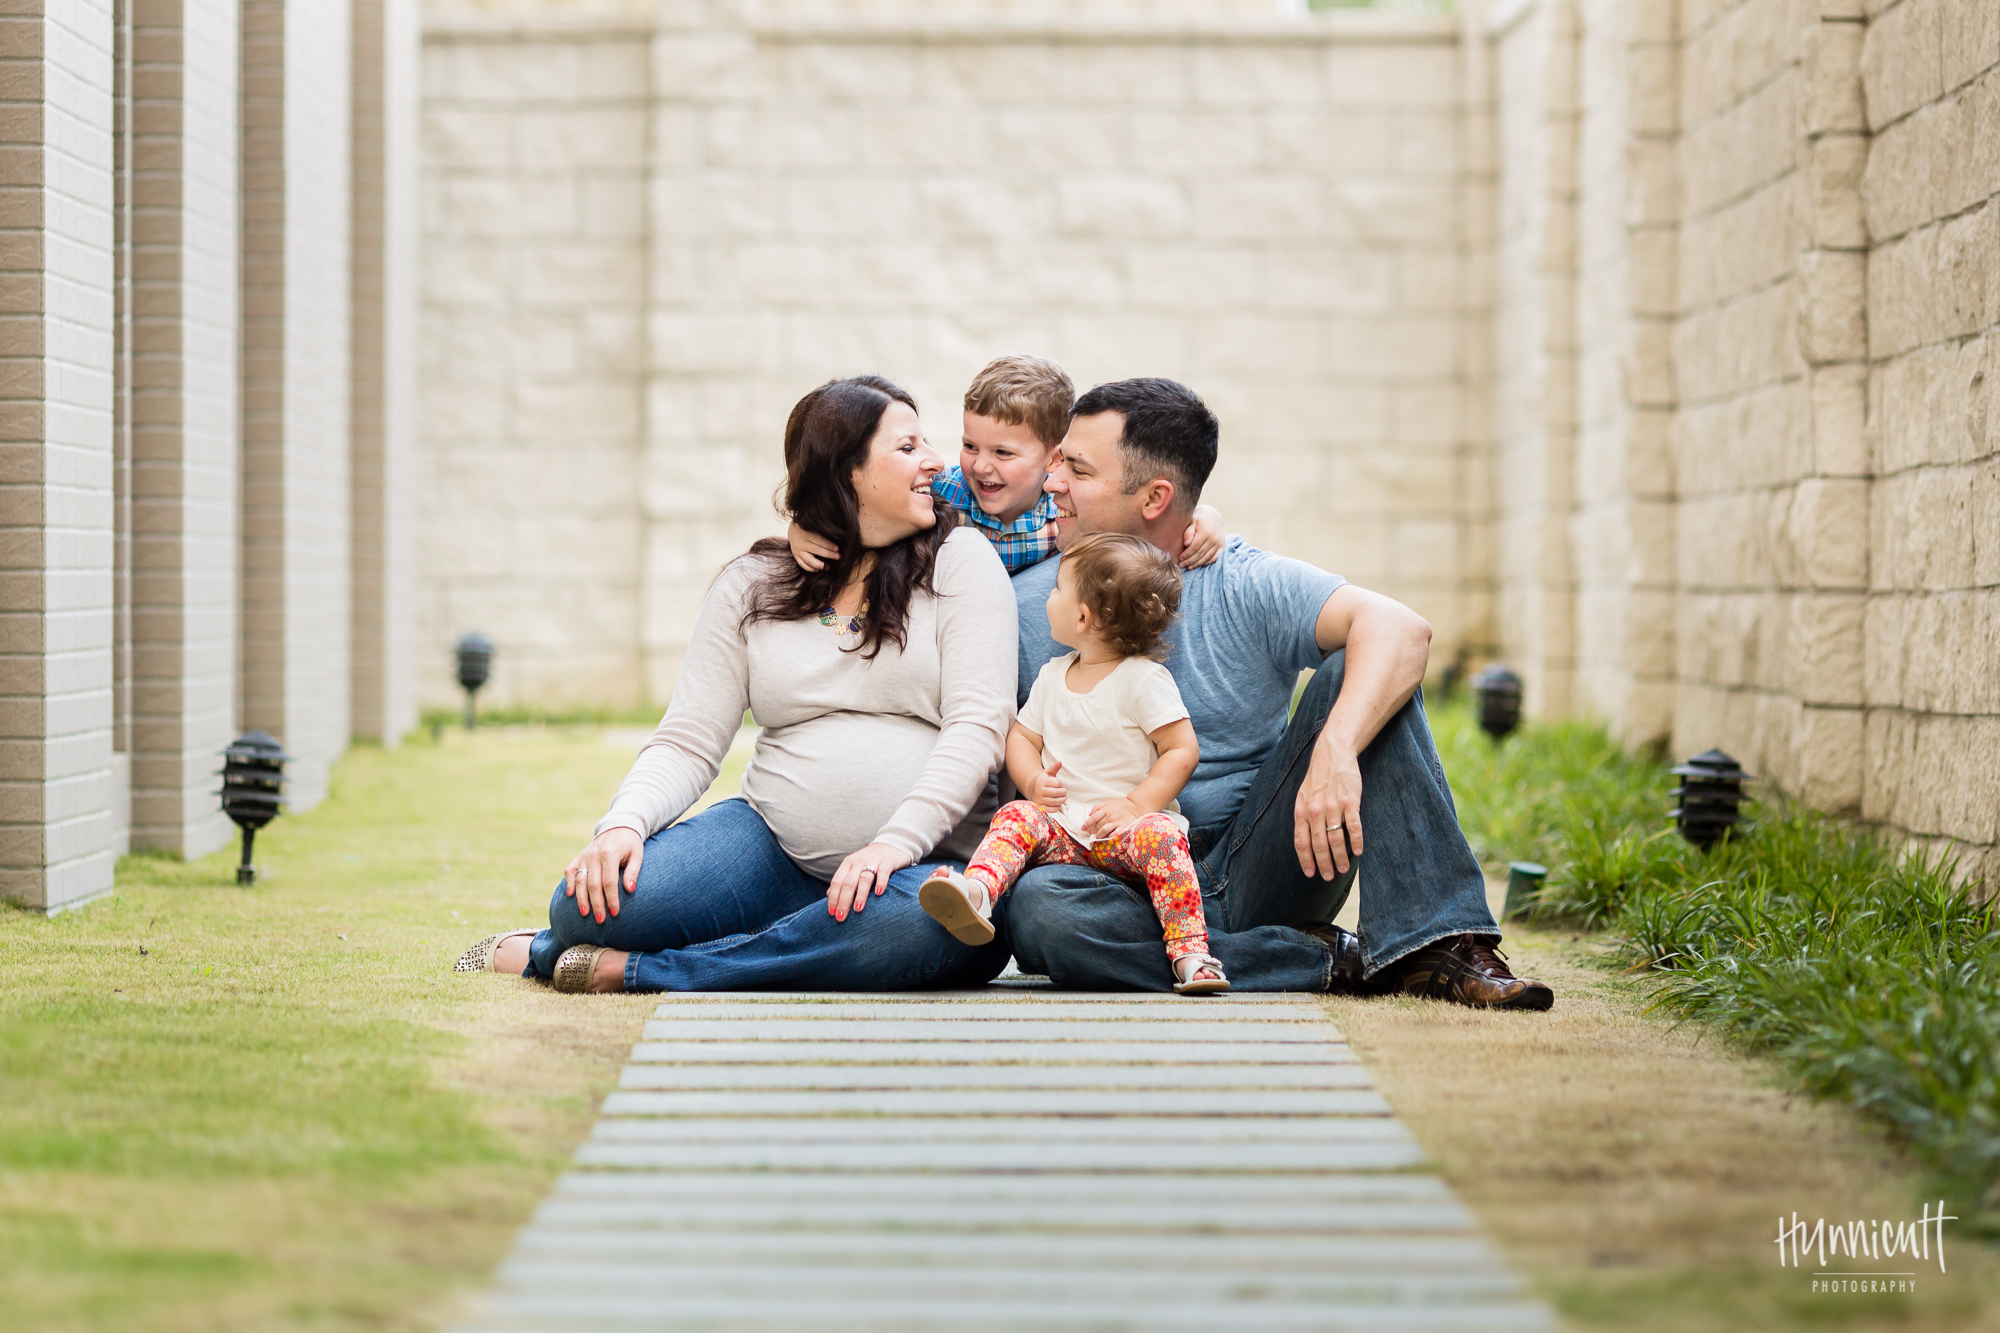 Urban-Maternity-Taiwan-Family-Five-19